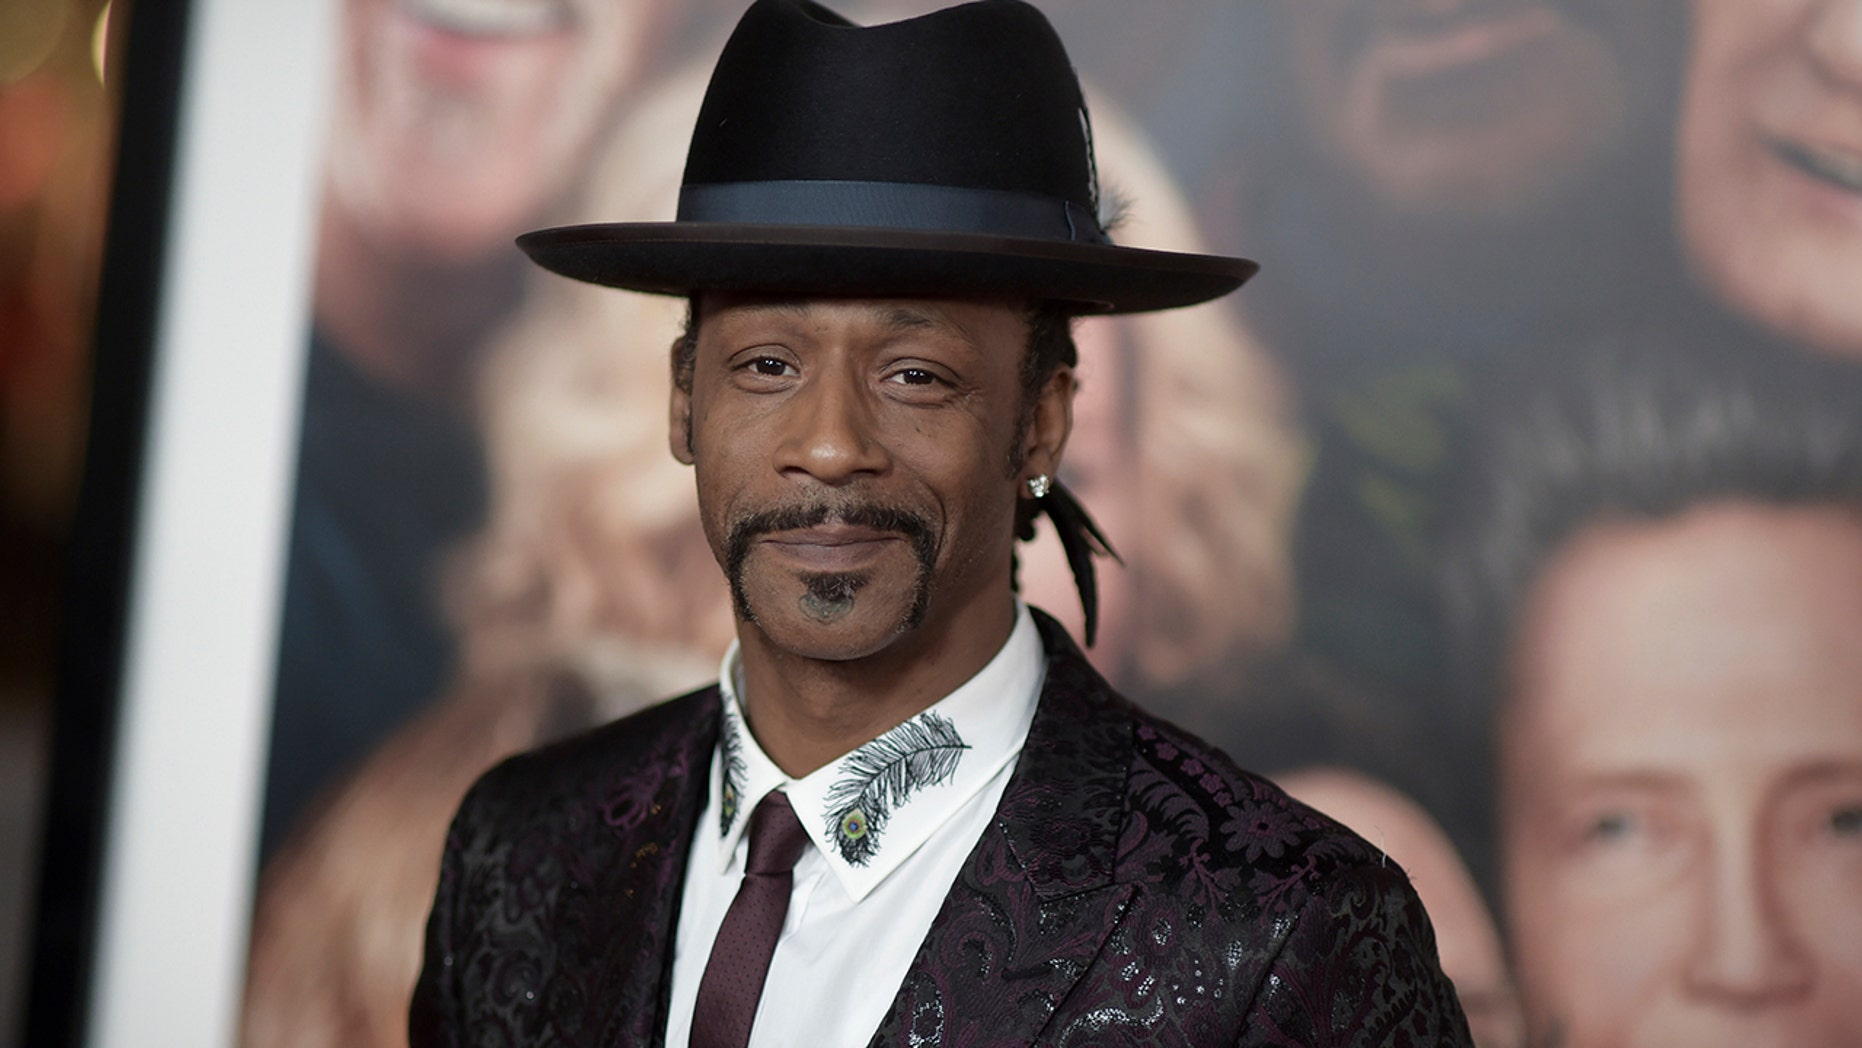 """FILE - In this Dec. 13, 2017, file photo, Katt Williams attends the LA Premiere of """"Father Figures"""" in Los Angeles. Williams was arrested on suspicion of assaulting a driver. Williams is in jail Sunday, Oct, 7, 2018. He had come to Portland to perform in Nick Cannon's """"Wild 'N Out"""" comedy improv show Friday night."""